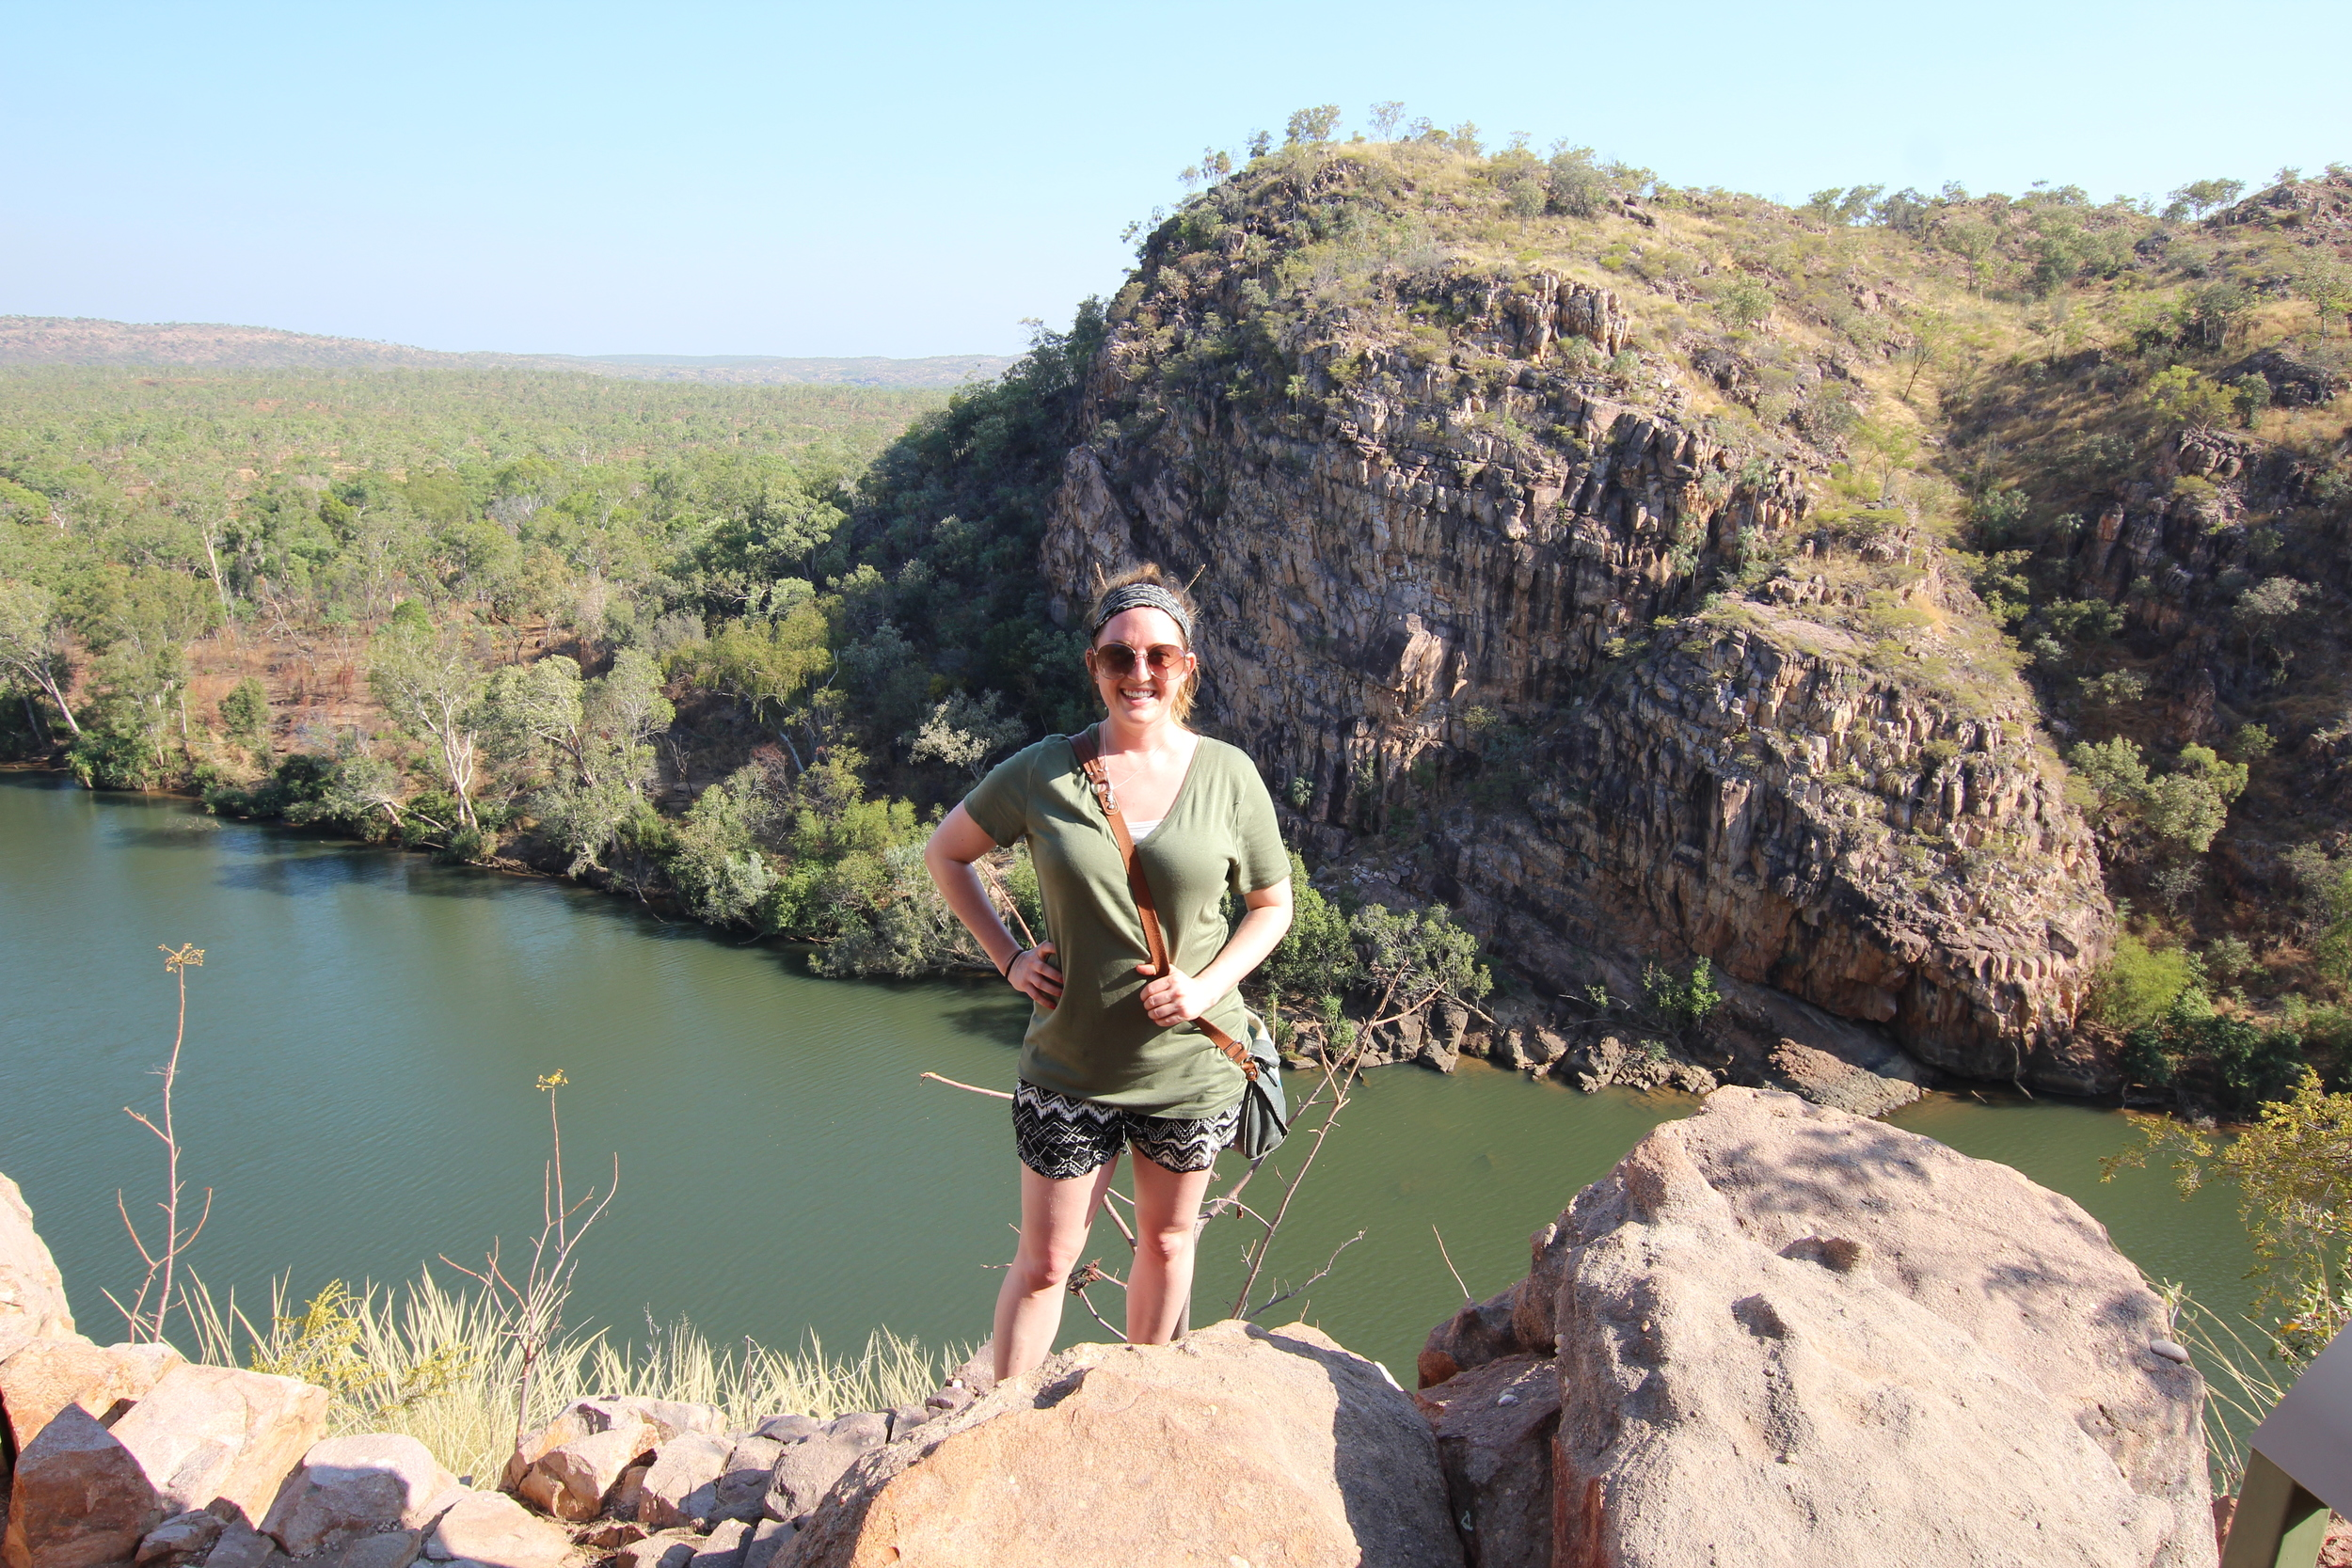 On top of Katherine Gorge